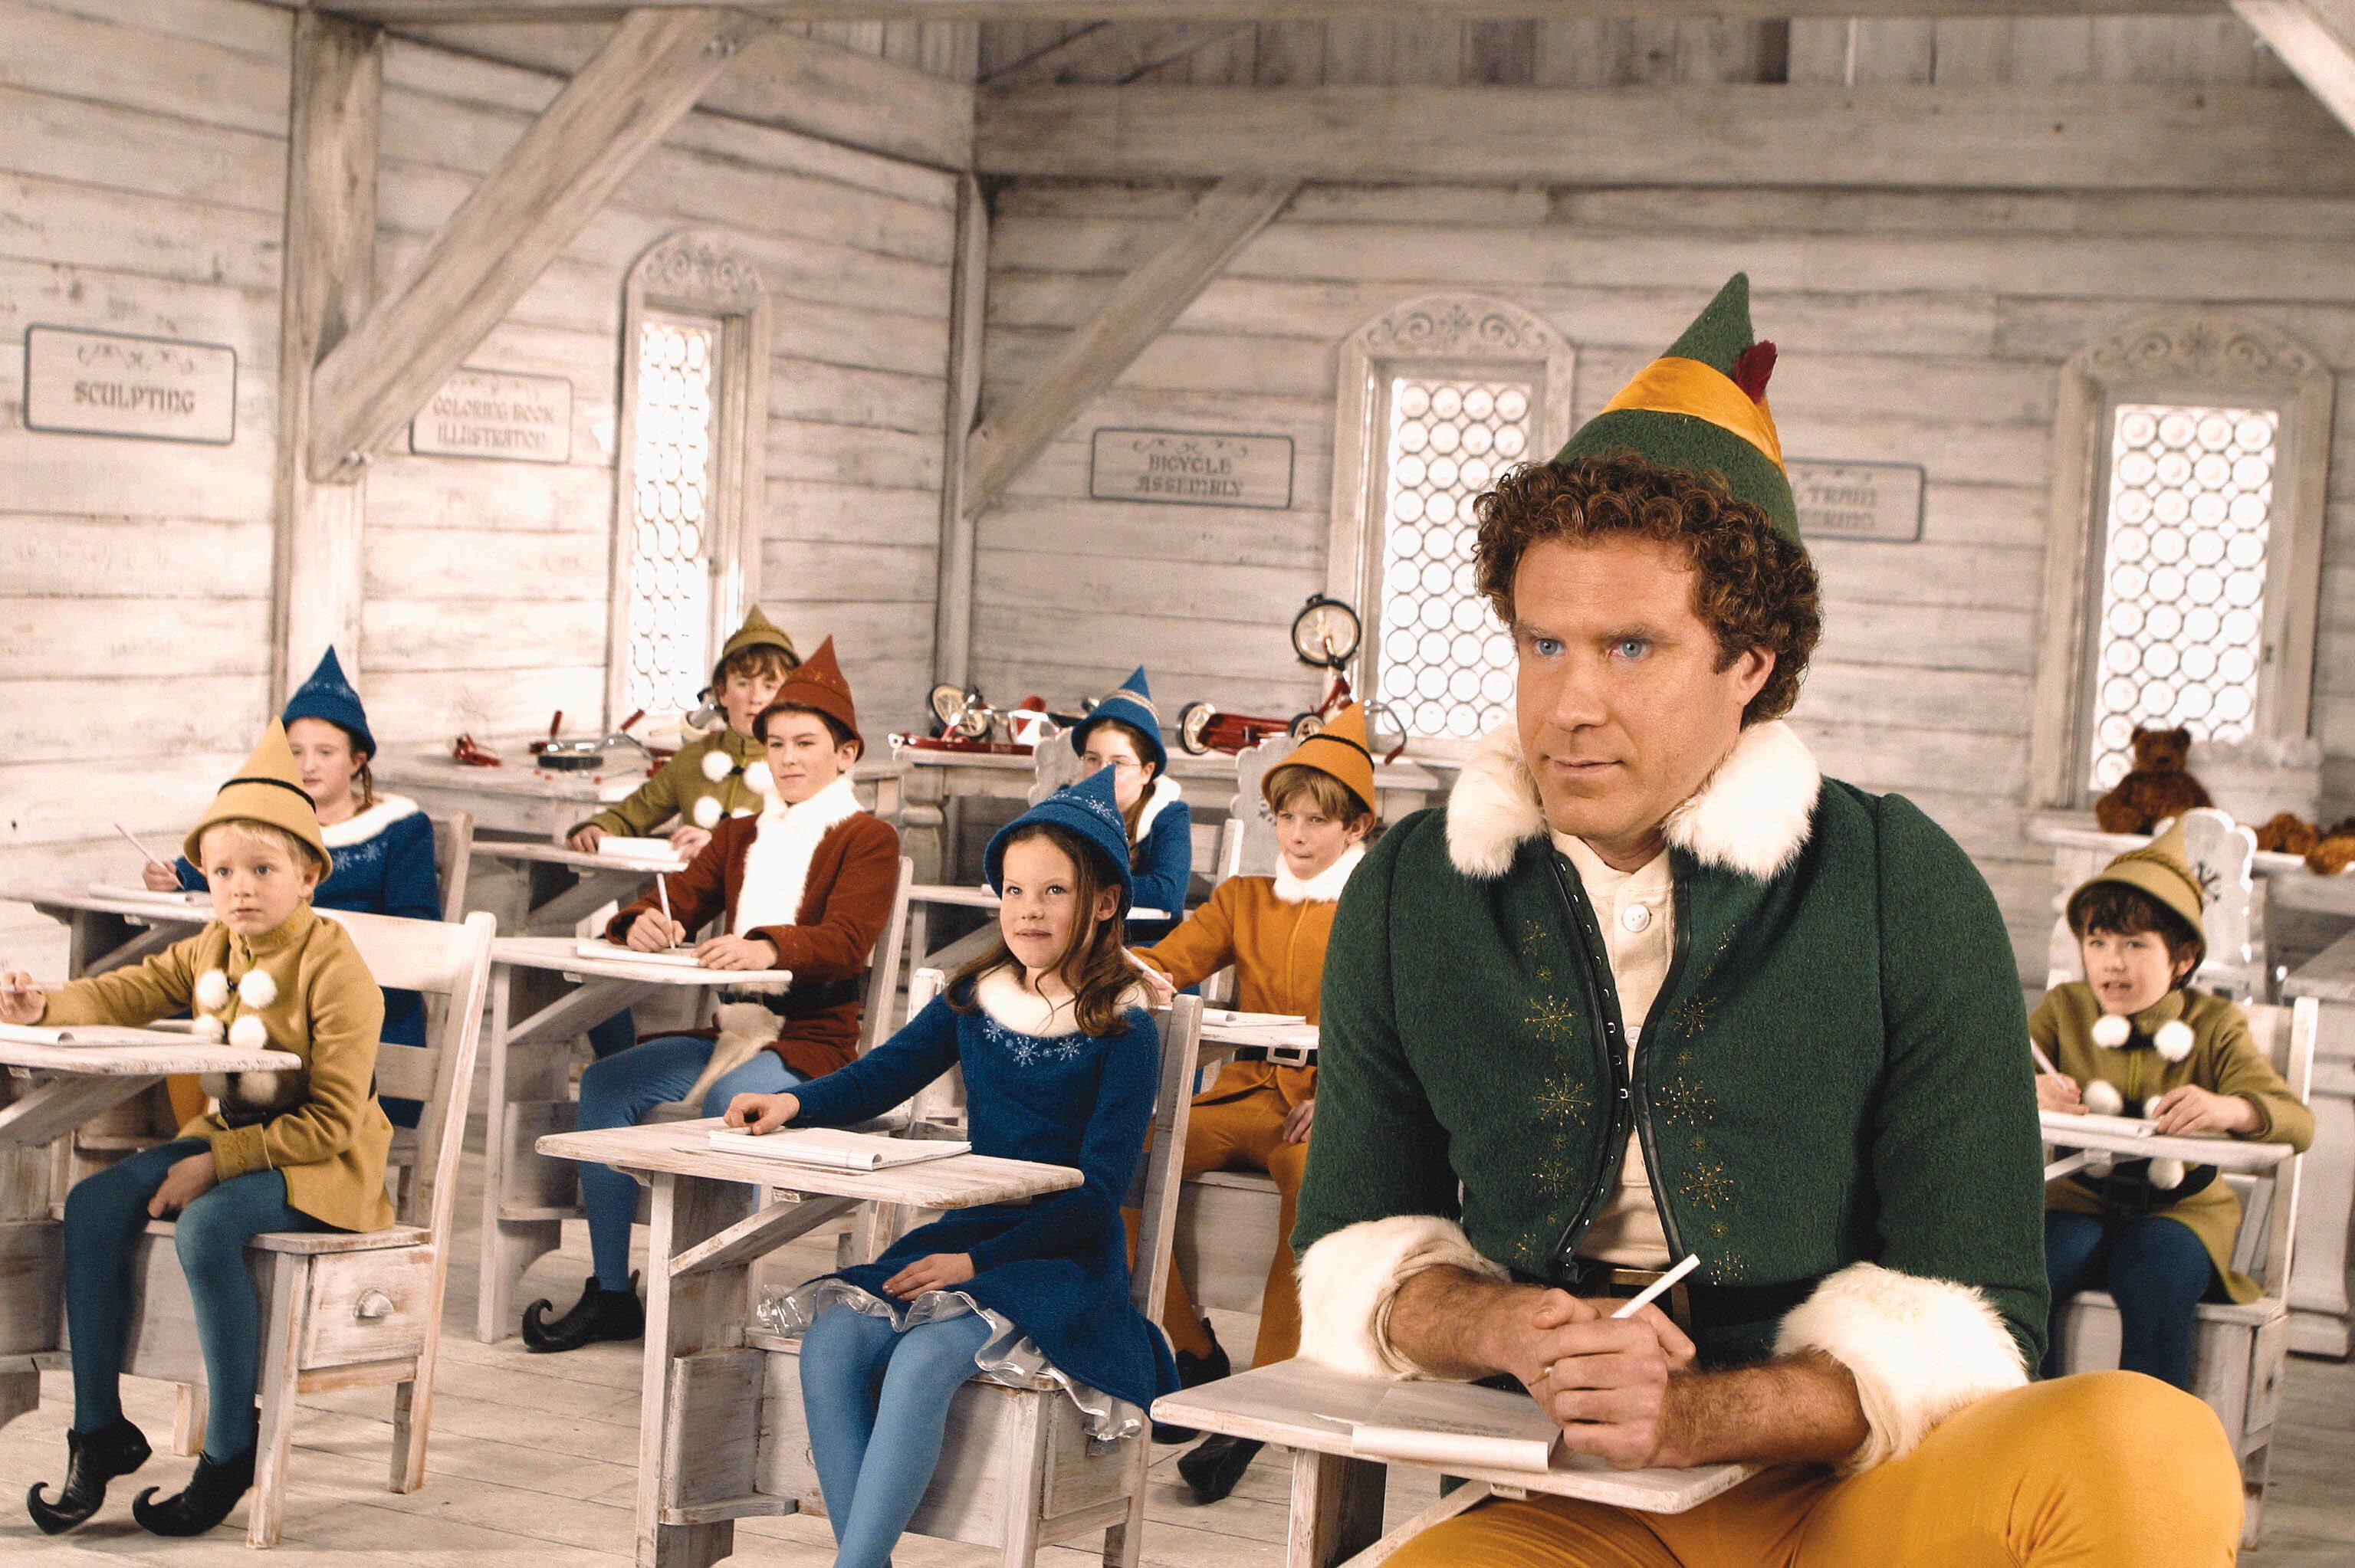 Will Ferrell in Elf (2003). © New Line Cinema